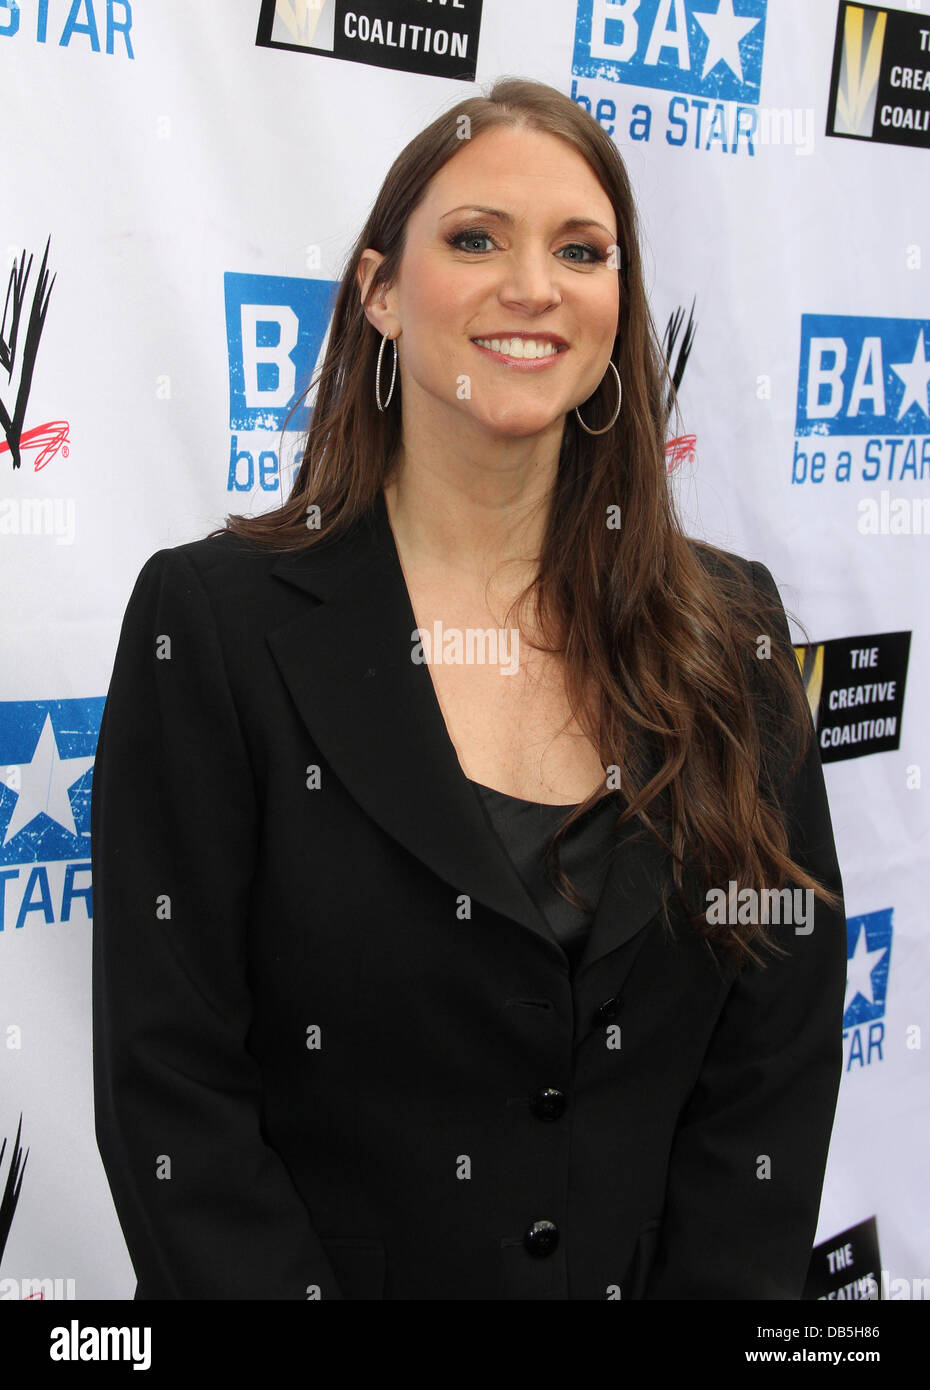 Stephanie McMahon Anti-Bullying Alliance 'Be A Star' launched by The Creative Coalition, A-List celebs and - Stock Image